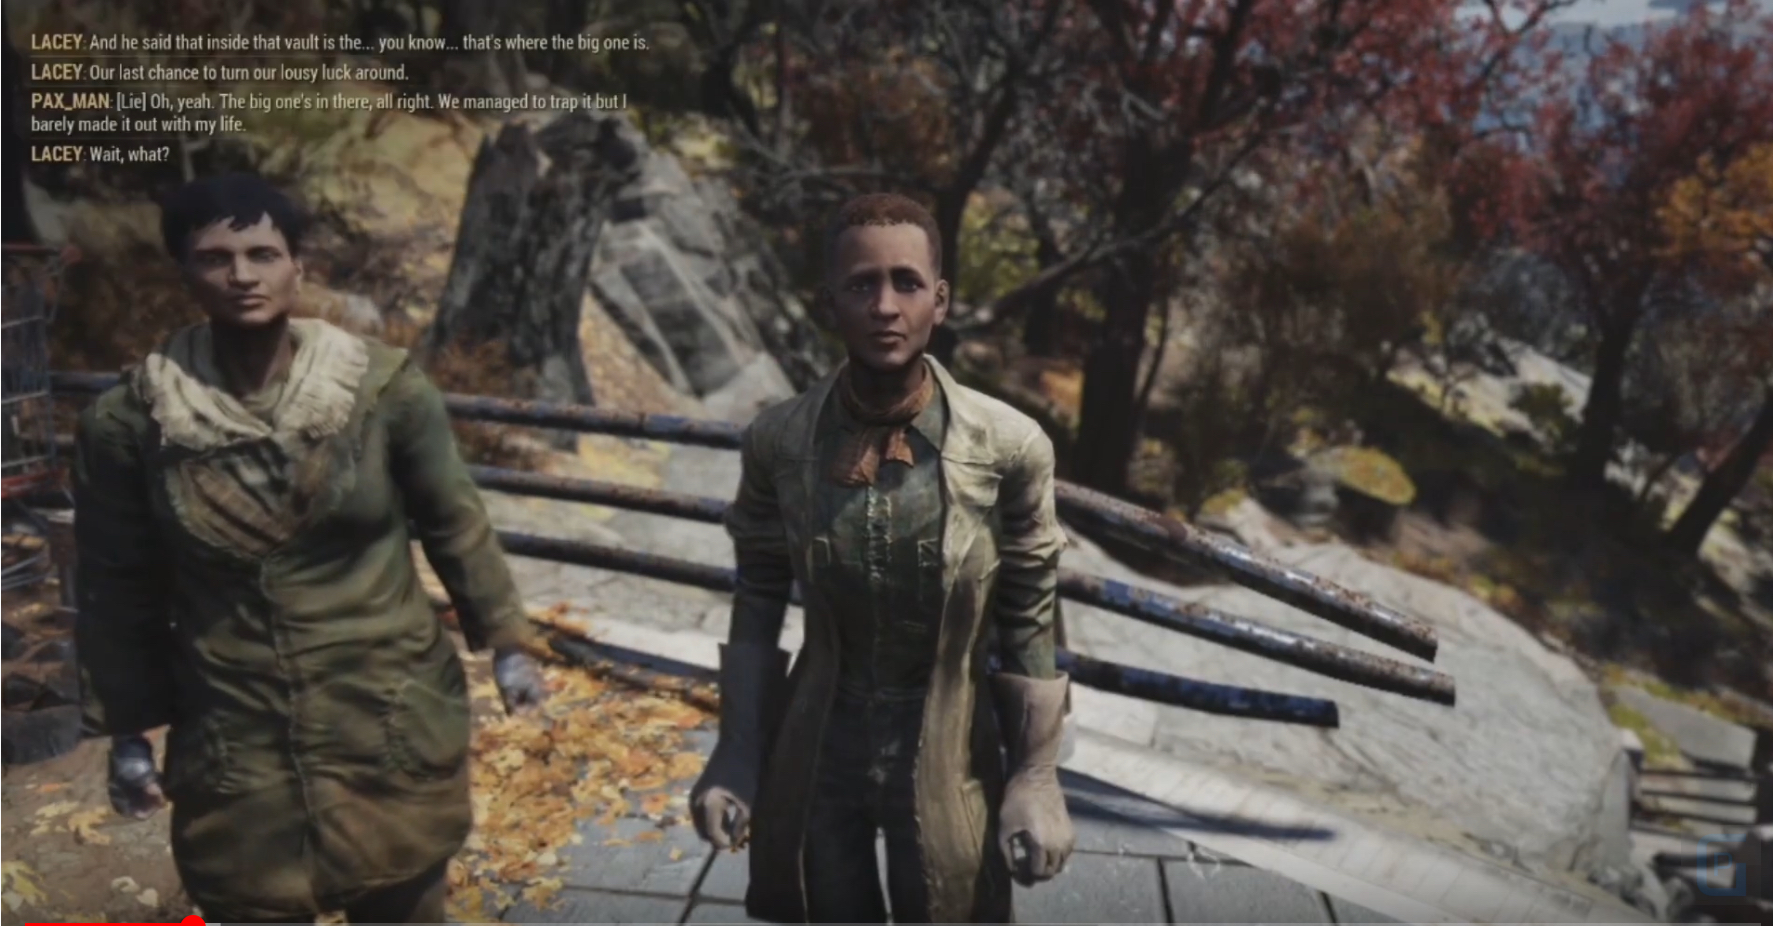 Gameplay Of Fallout 76's Wastelanders Update Was Just Shown At PAX East By Bethesda